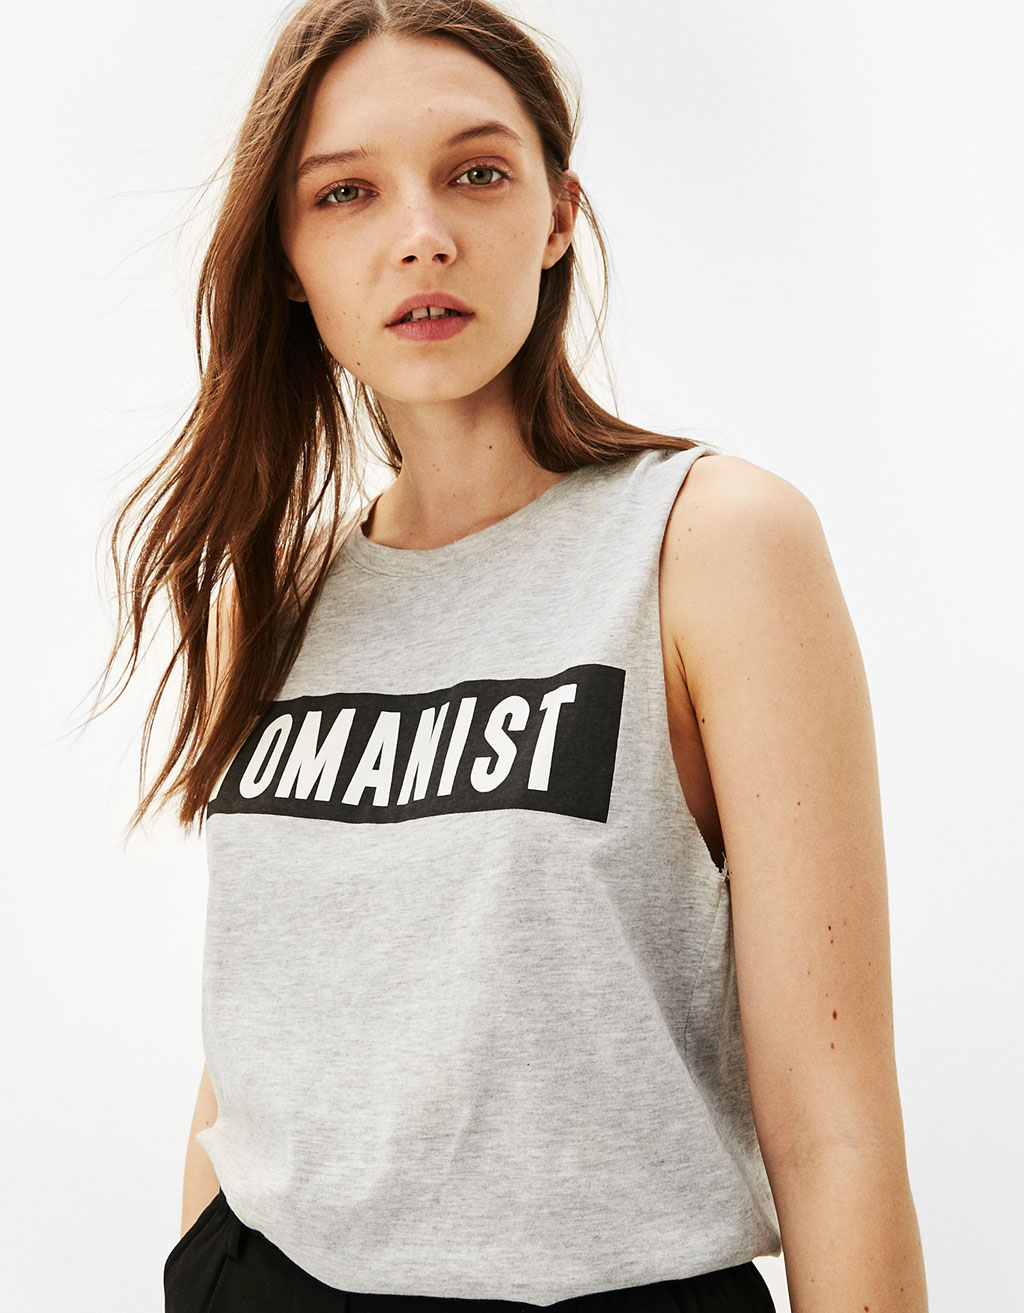 Camiseta sin mangas 'Womanist/Boyfriend'